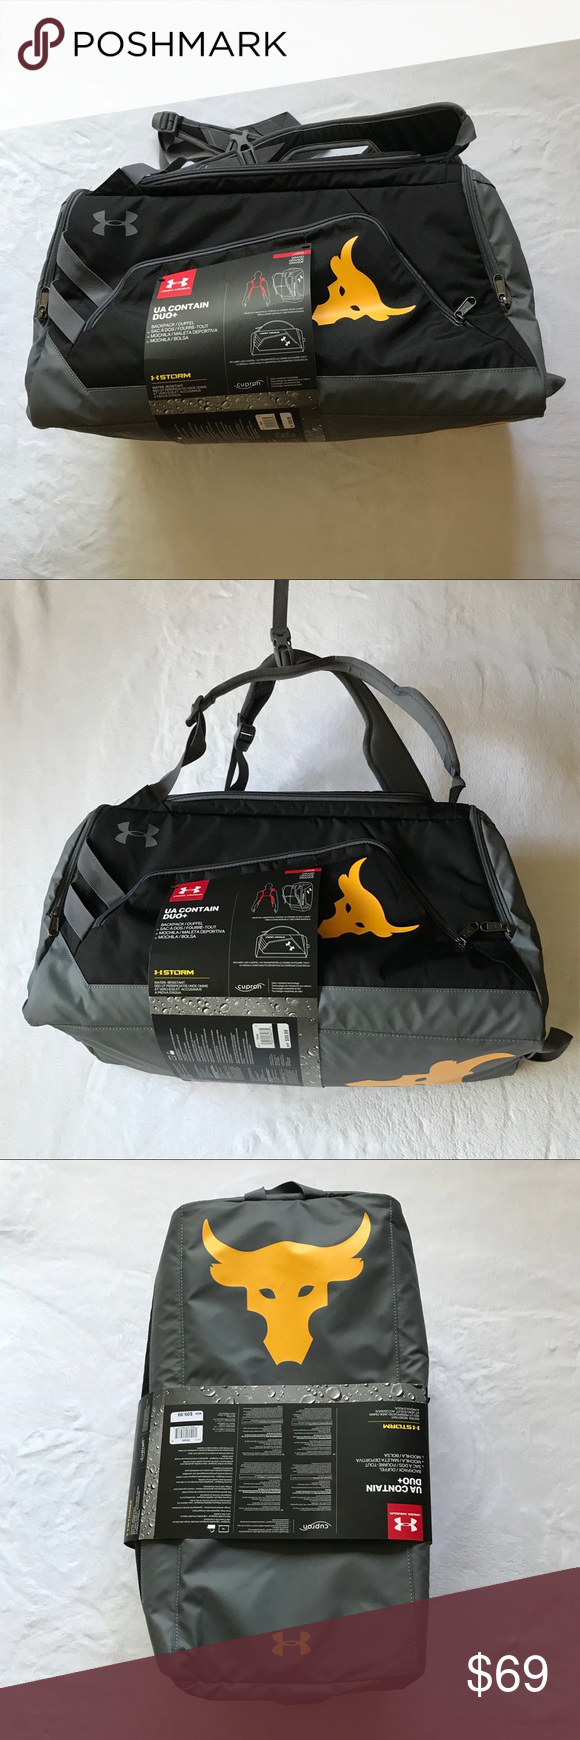 03f3fad78b Under Armour x Project Rock Contain Backpack Under Armour x Project Rock  Contain Backpack Duffle 3.0 Black and yellow colors Style #1304575  Dimensions: 11